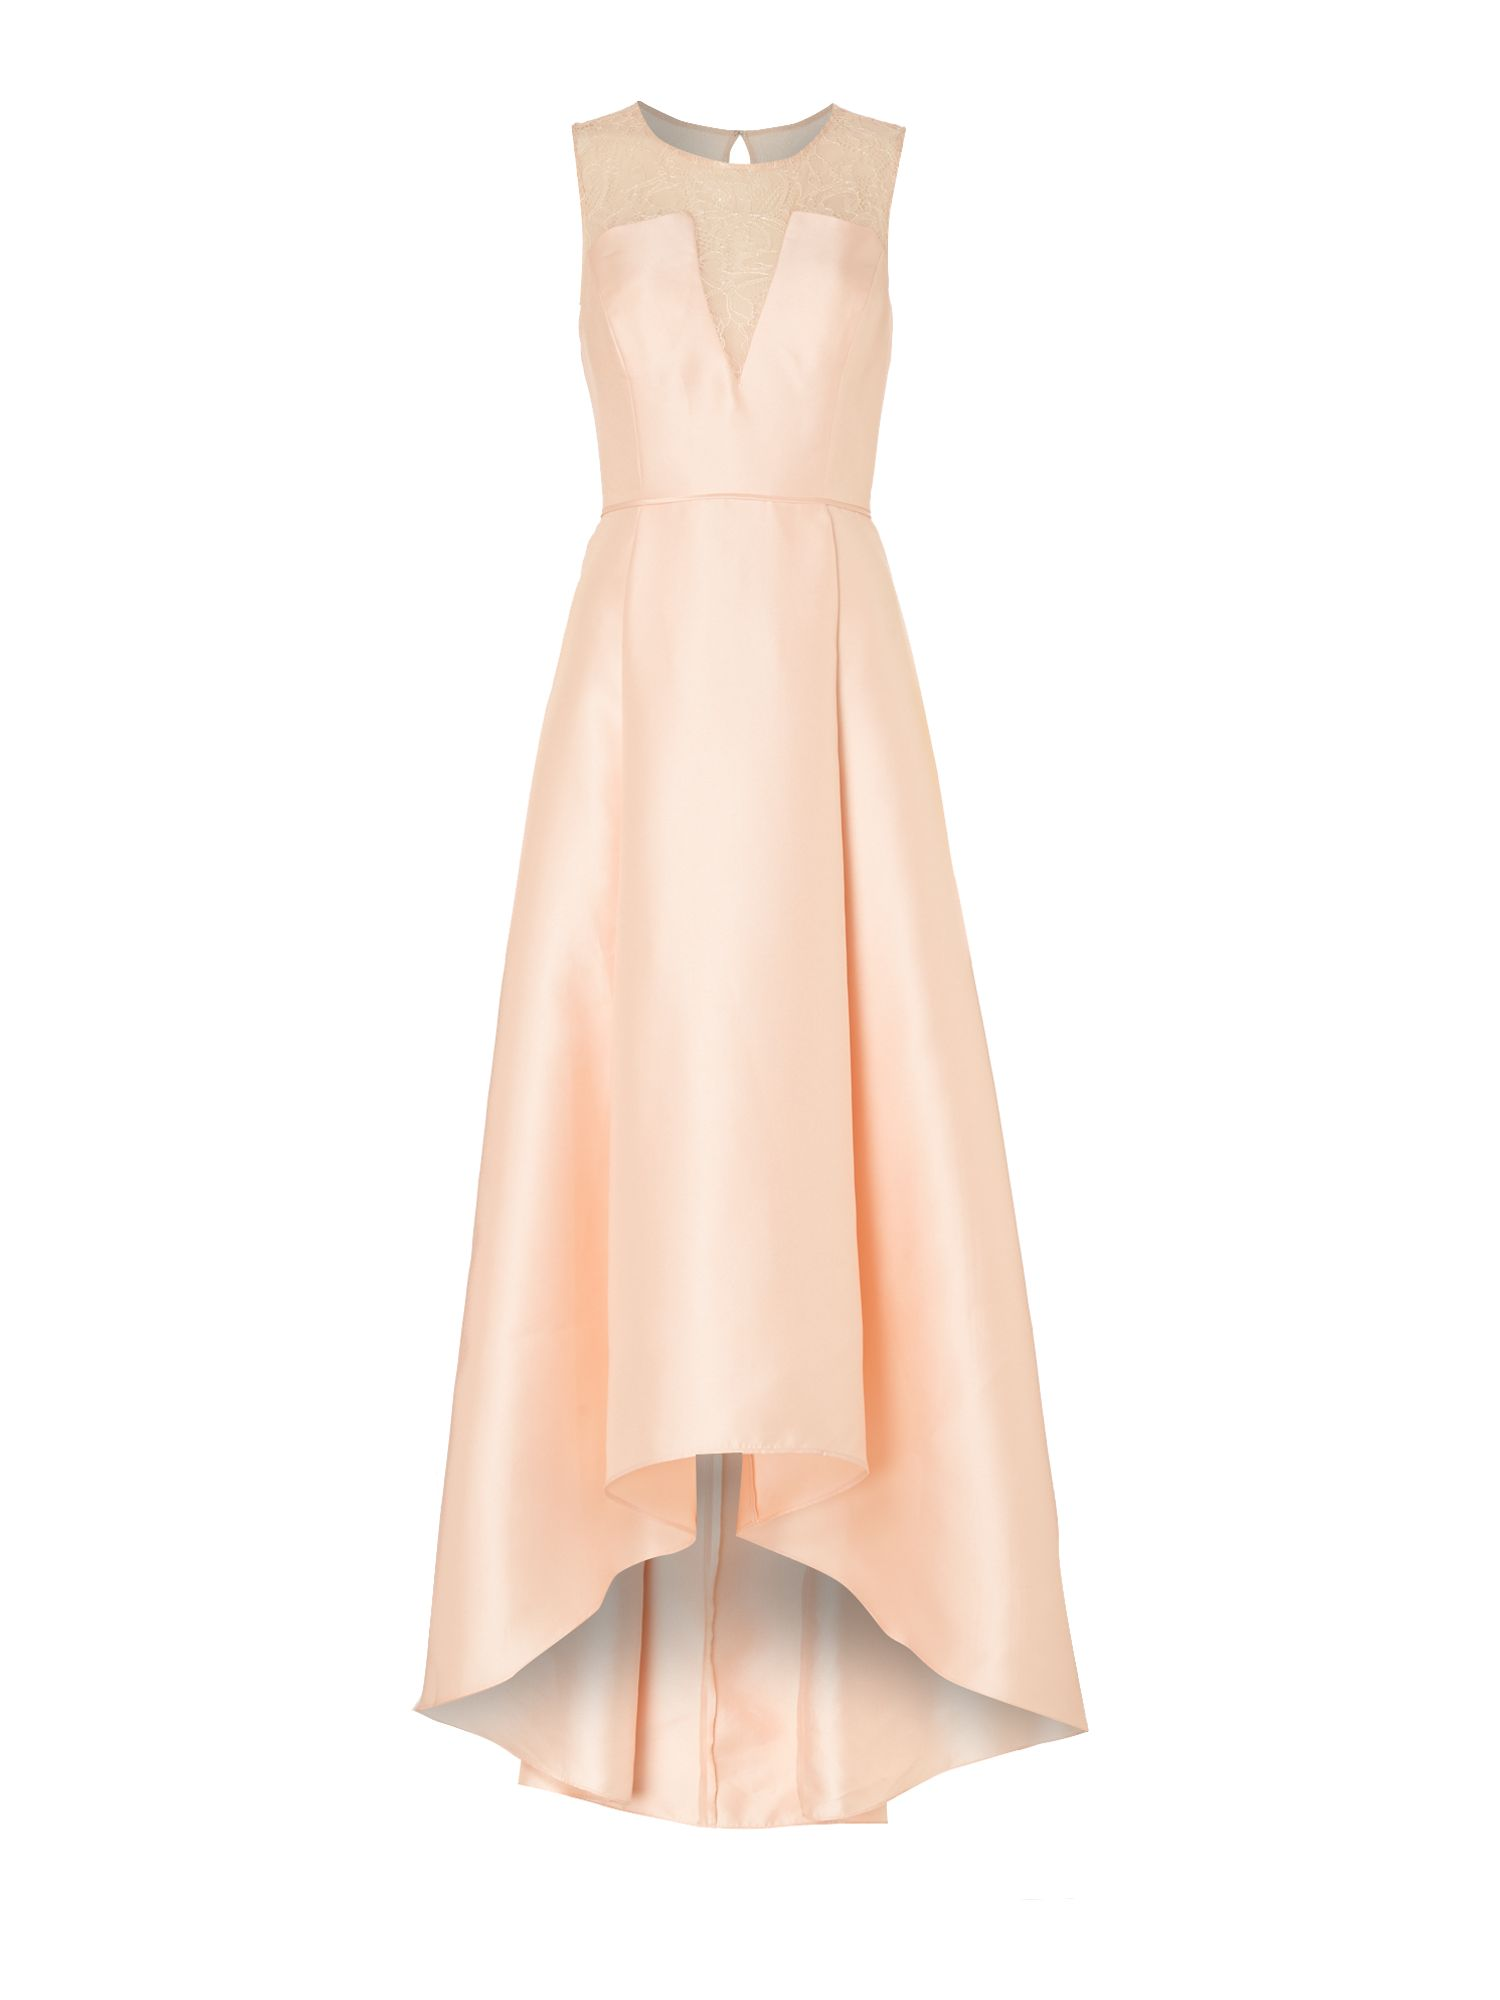 Adrianna Papell Lace Illusion Mikado High Low Gown, Apricot